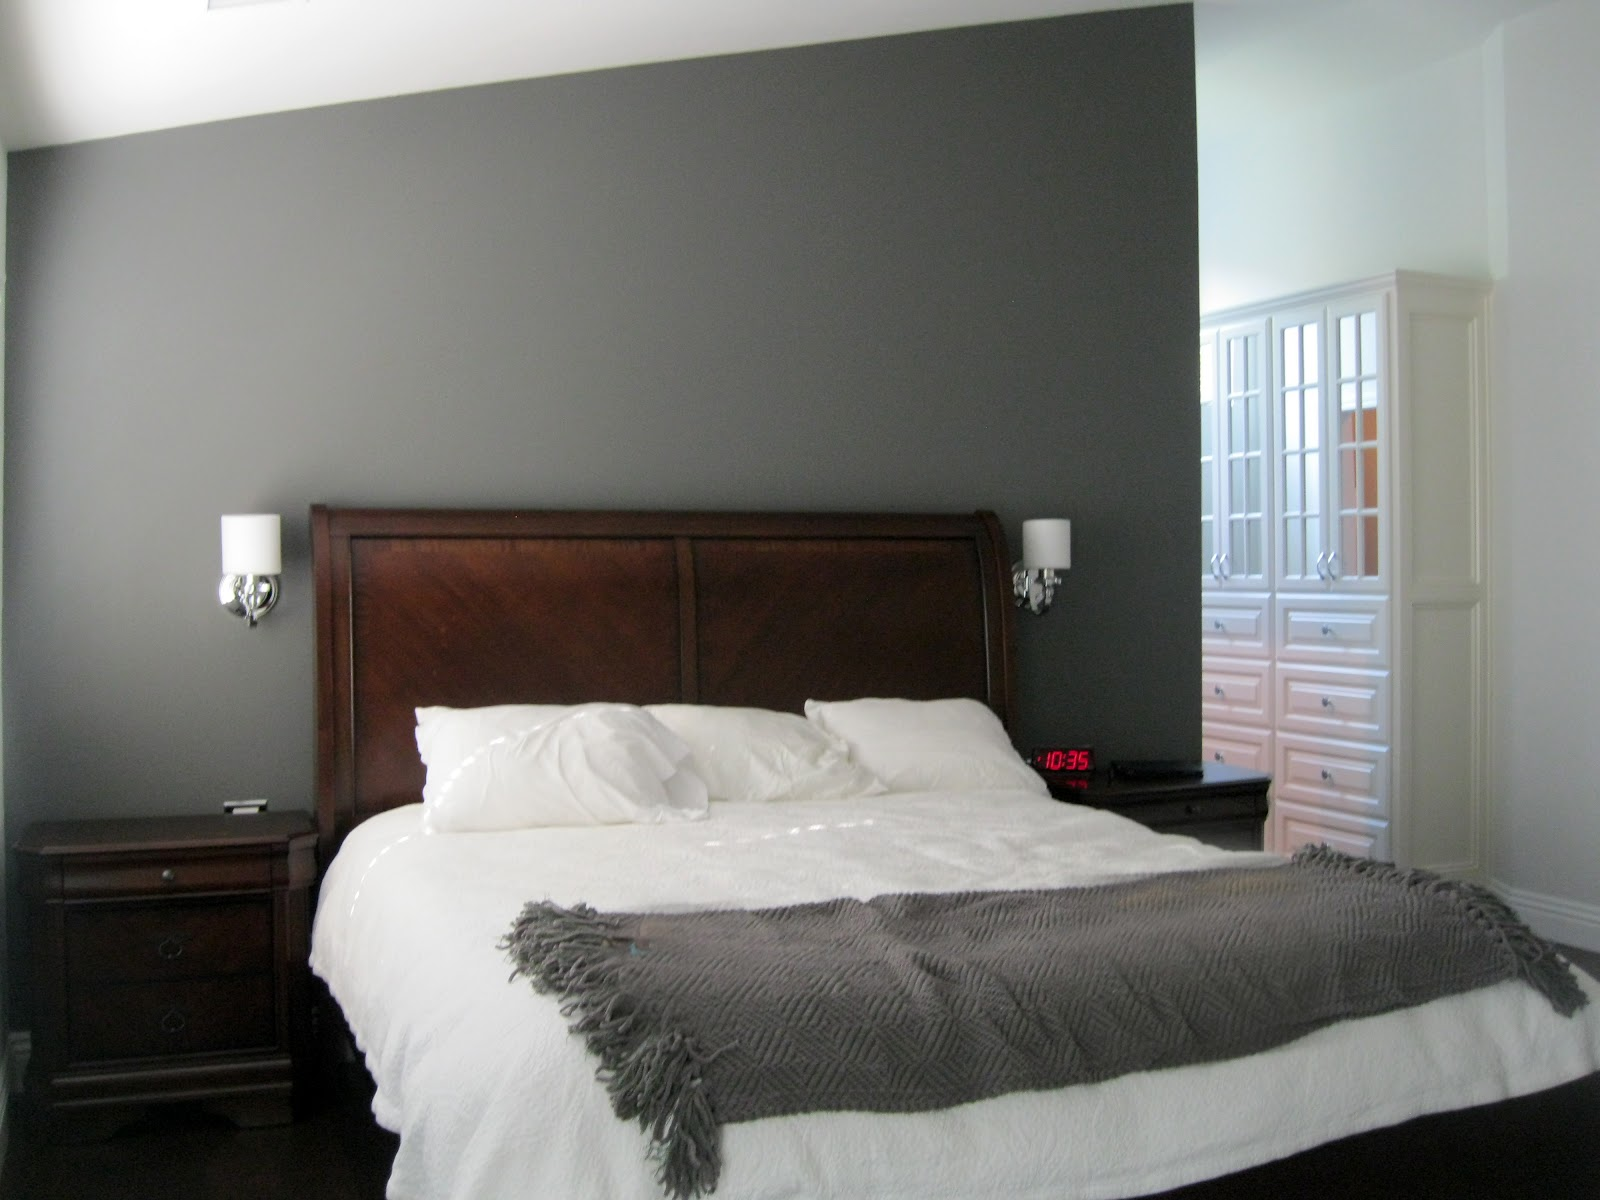 C B I D Home Decor And Design Charcoal Gray Master Suite